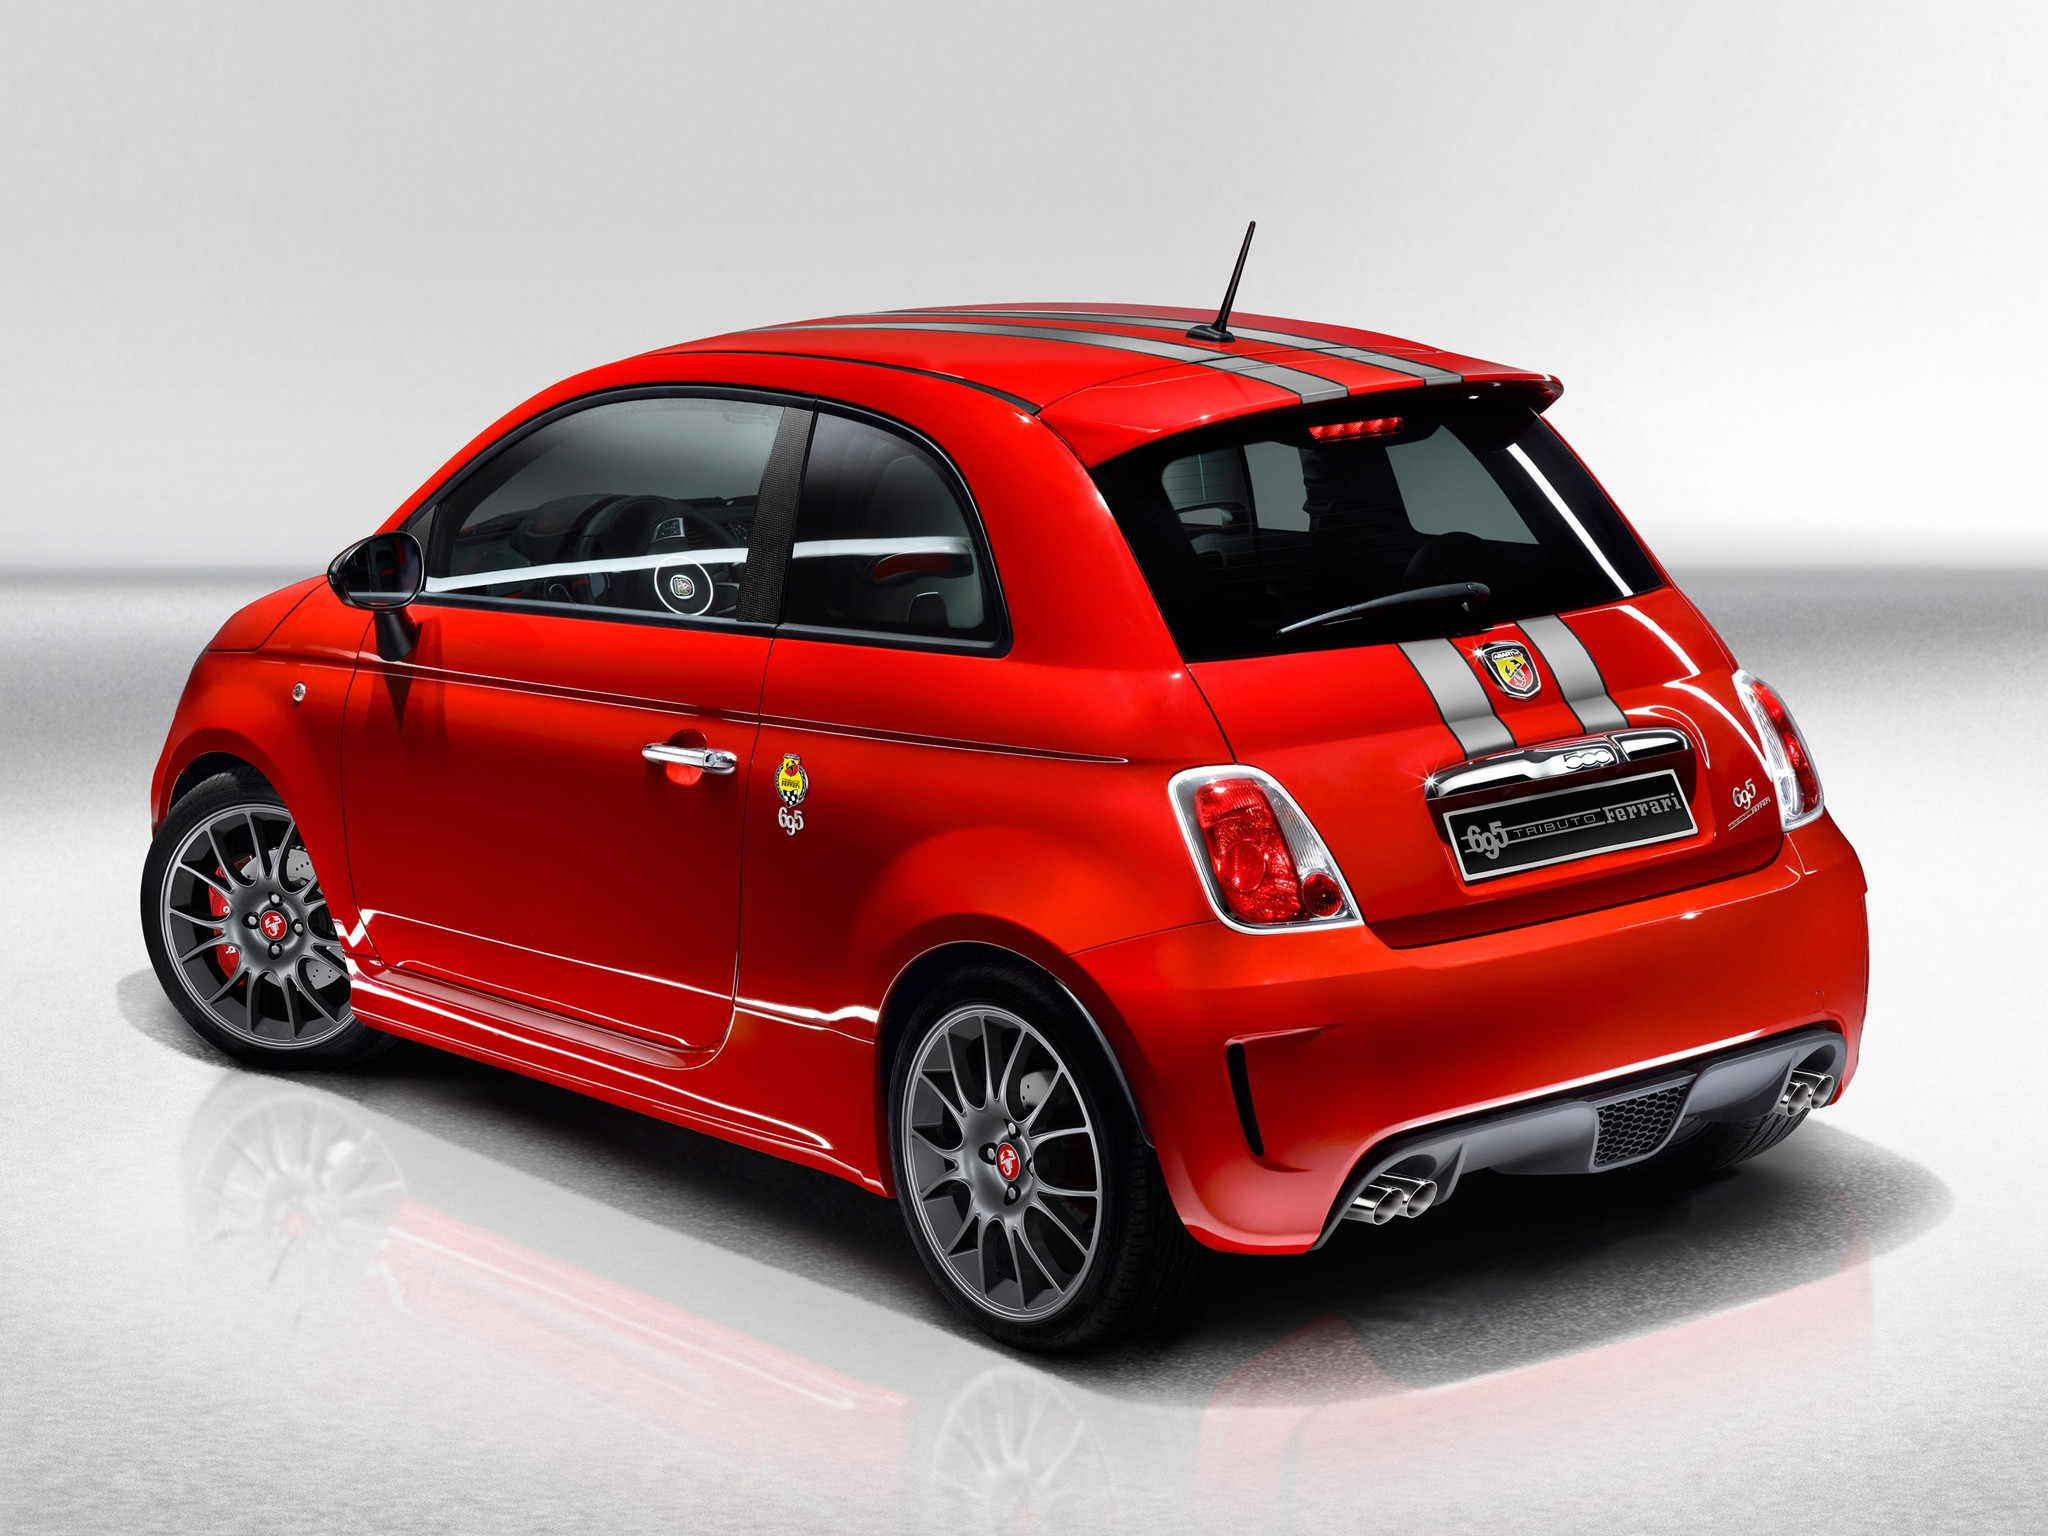 fiat 500 abarth 695 tributo ferrari 2009 2010 2011. Black Bedroom Furniture Sets. Home Design Ideas